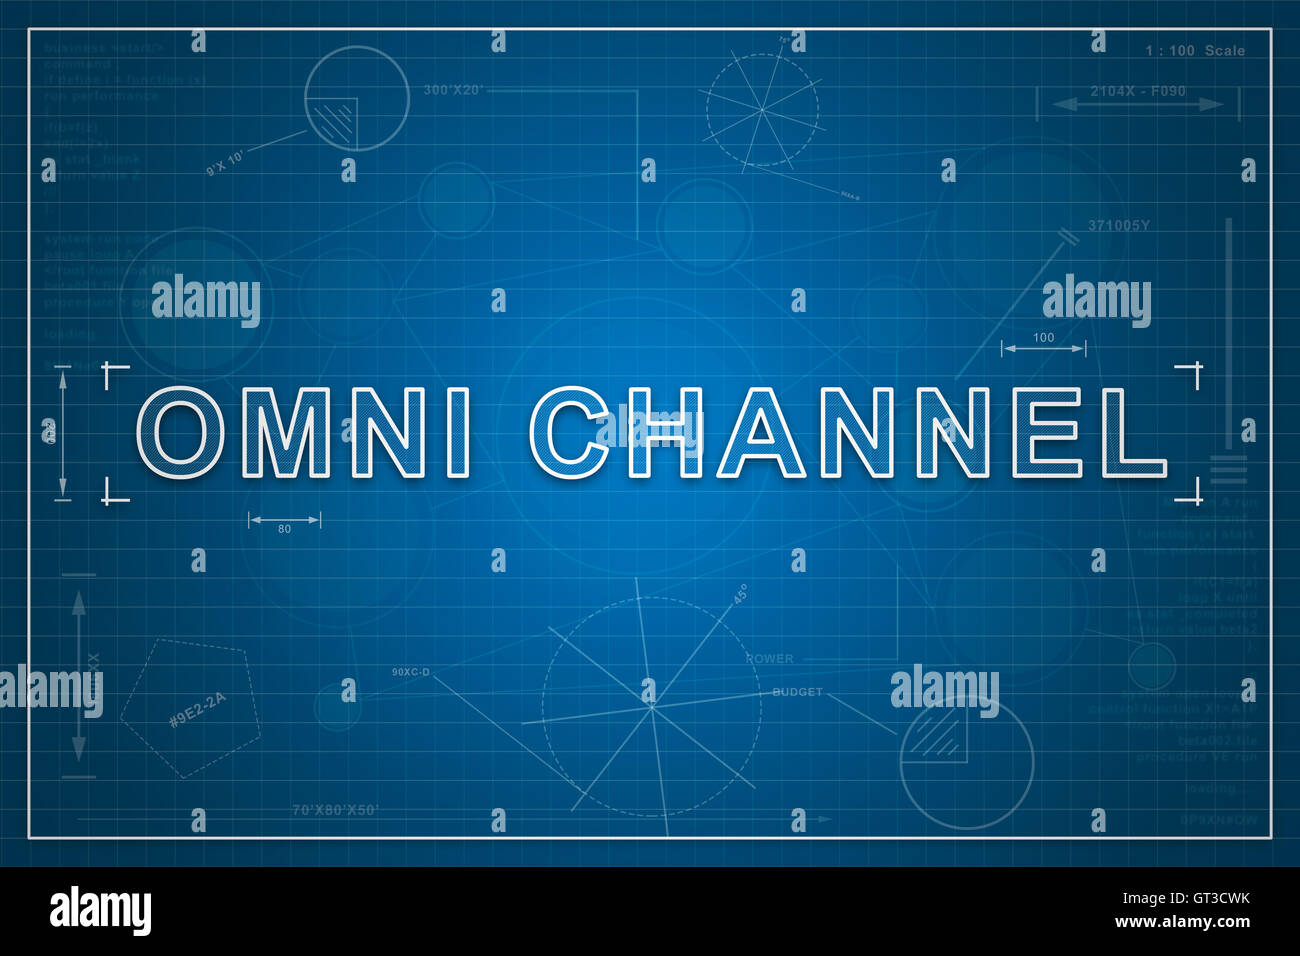 Omni channel marketing stock photos omni channel marketing stock omni channel on paper blueprint background business concept stock image malvernweather Image collections